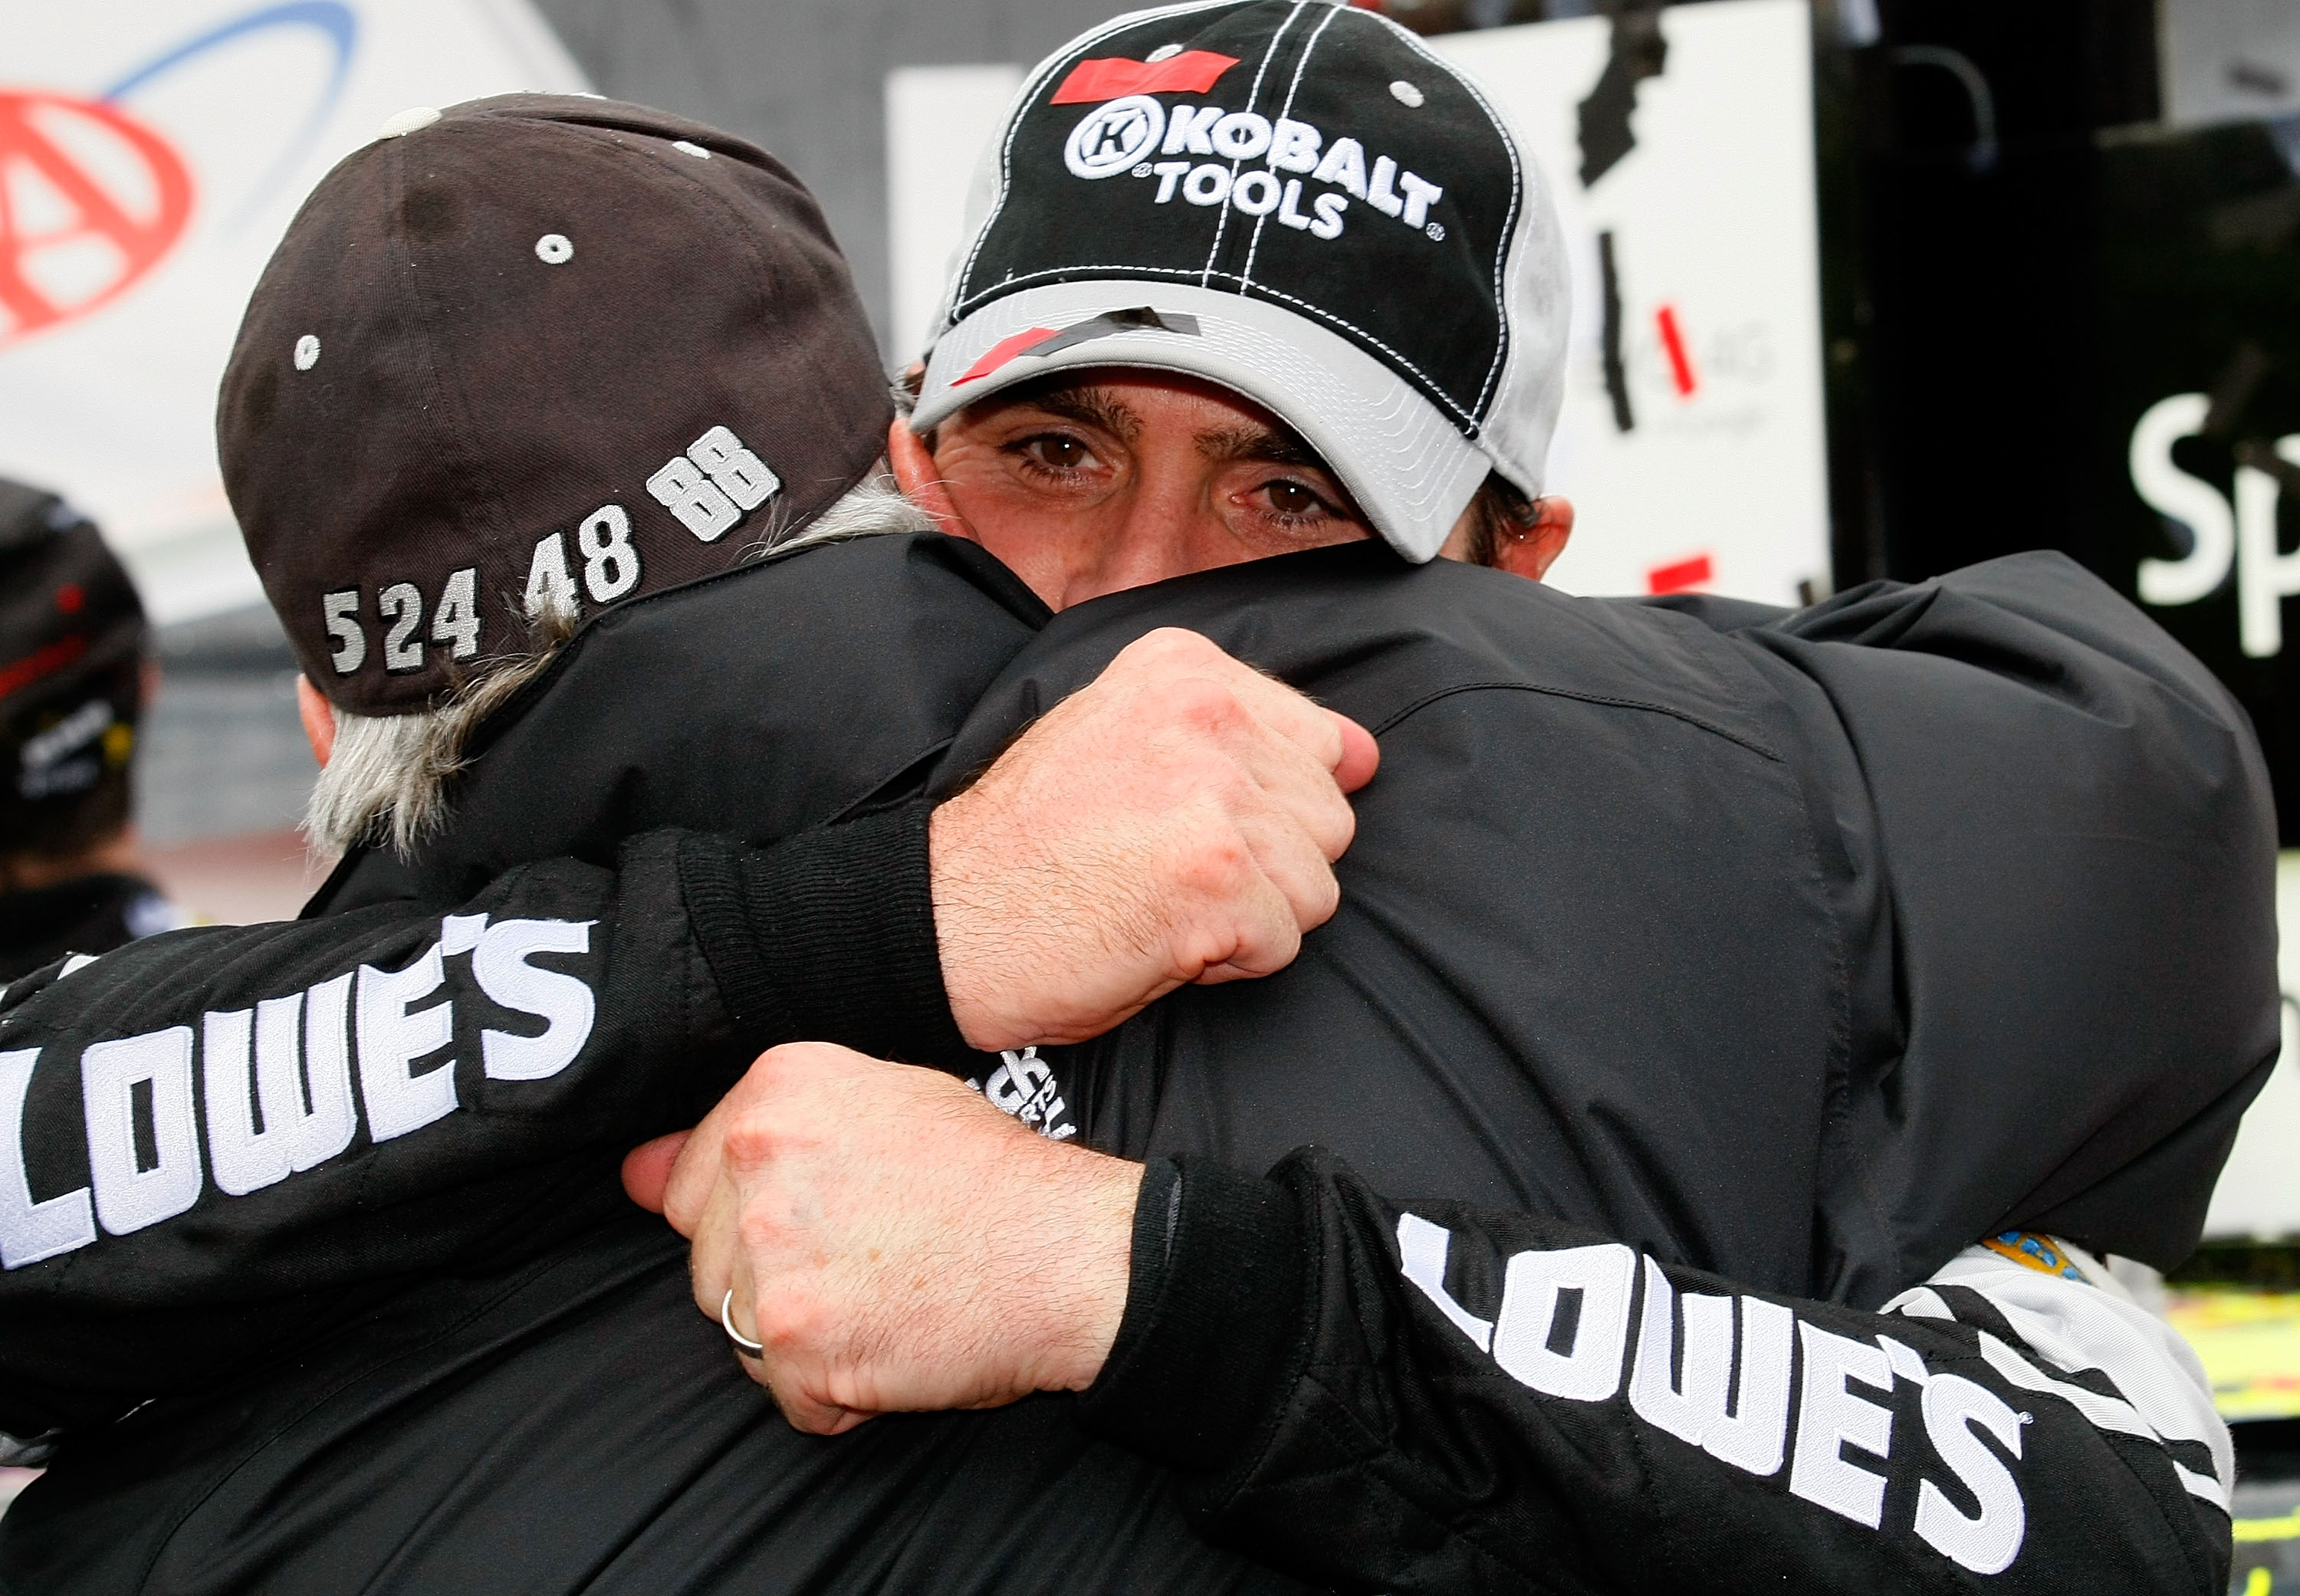 DOVER, DE - SEPTEMBER 26:  Jimmie Johnson (R), driver of the #48 Lowe's Chevrolet, hugs team owner Rick Hendrick in Victory Lane after winning the NASCAR Sprint Cup Series AAA 400 at Dover International Speedway on September 26, 2010 in Dover, Delaware.